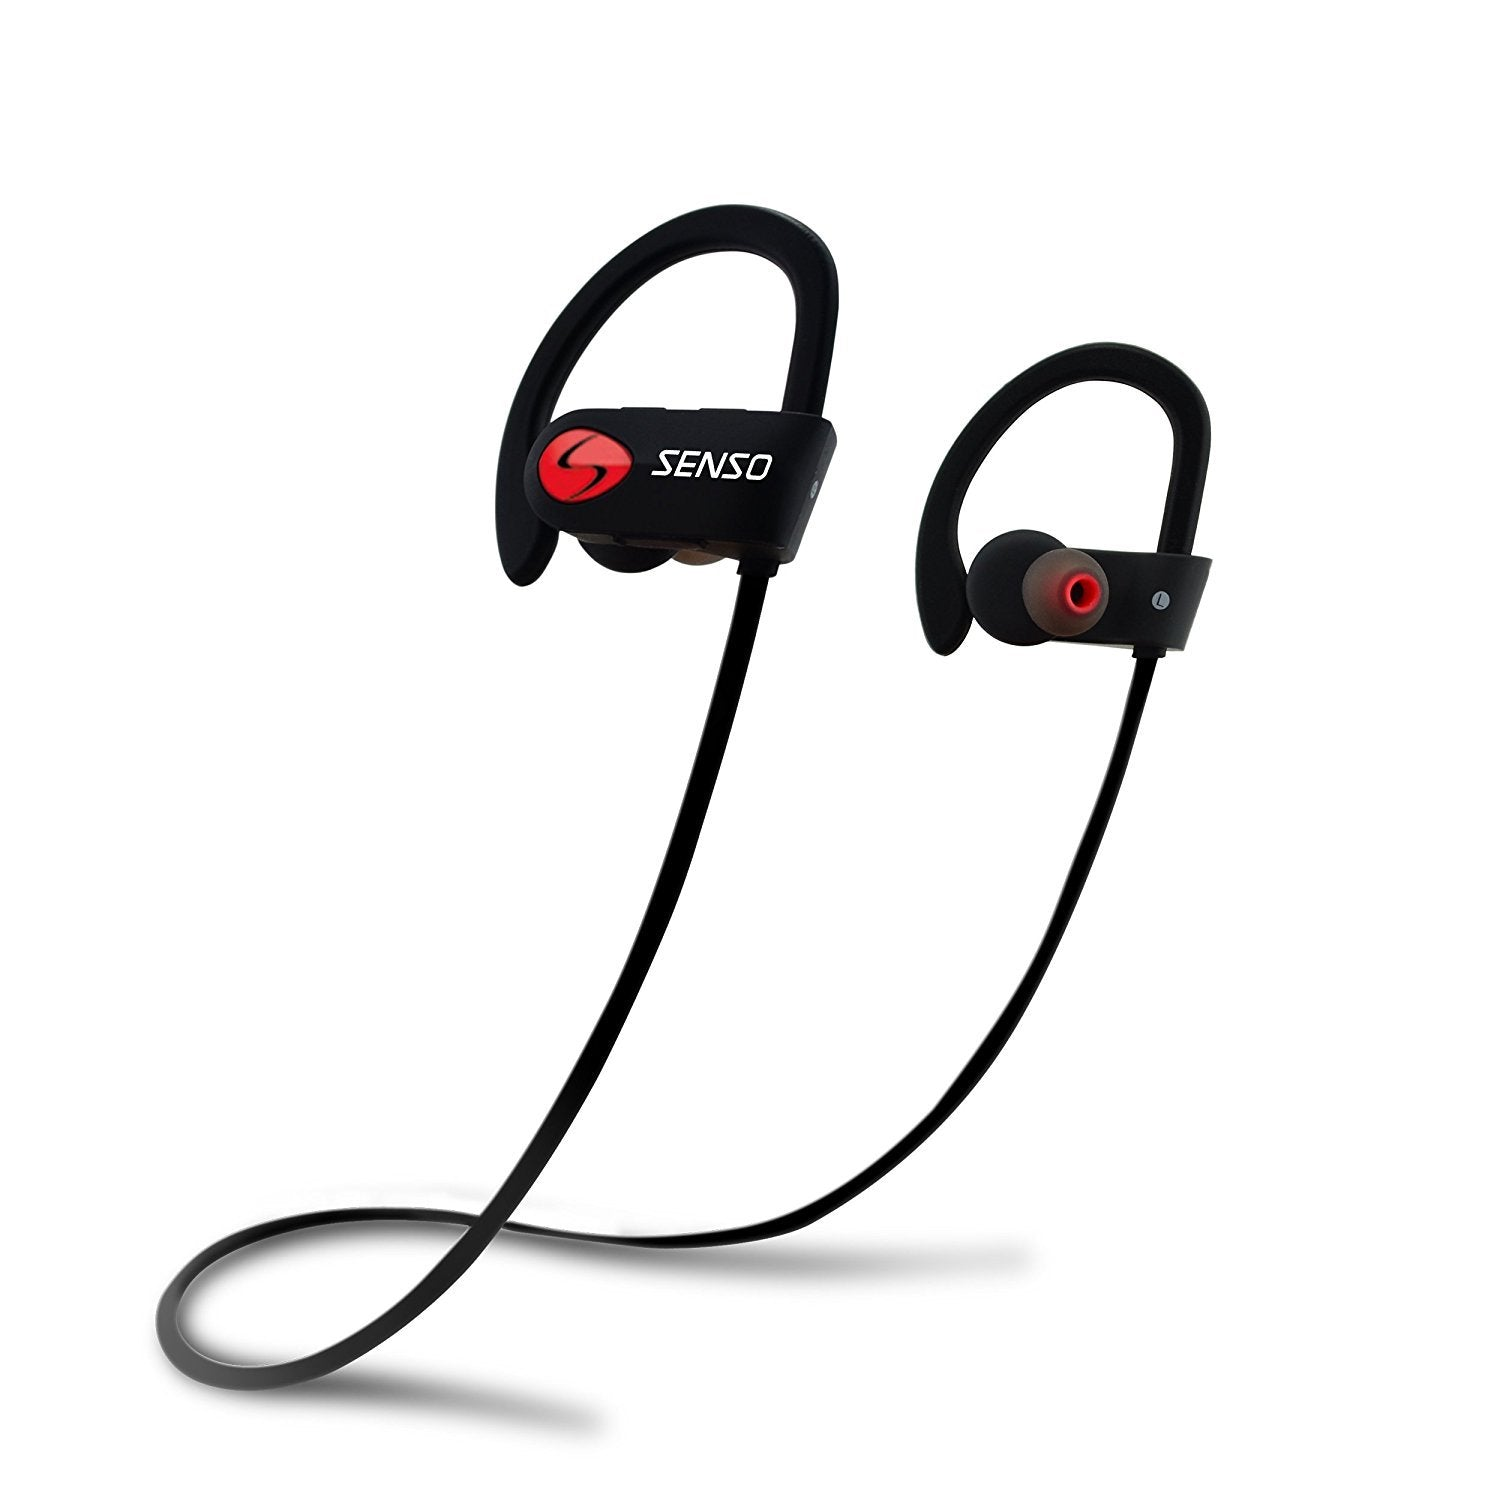 SENSO Bluetooth Headphones, Best Wireless Sports Earphones w/Mic IPX7 Waterproof HD Stereo Sweatproof Earbuds for Gym Running Workout 8 Hour Battery Noise Cancelling Headsets - Ctfitnesswear